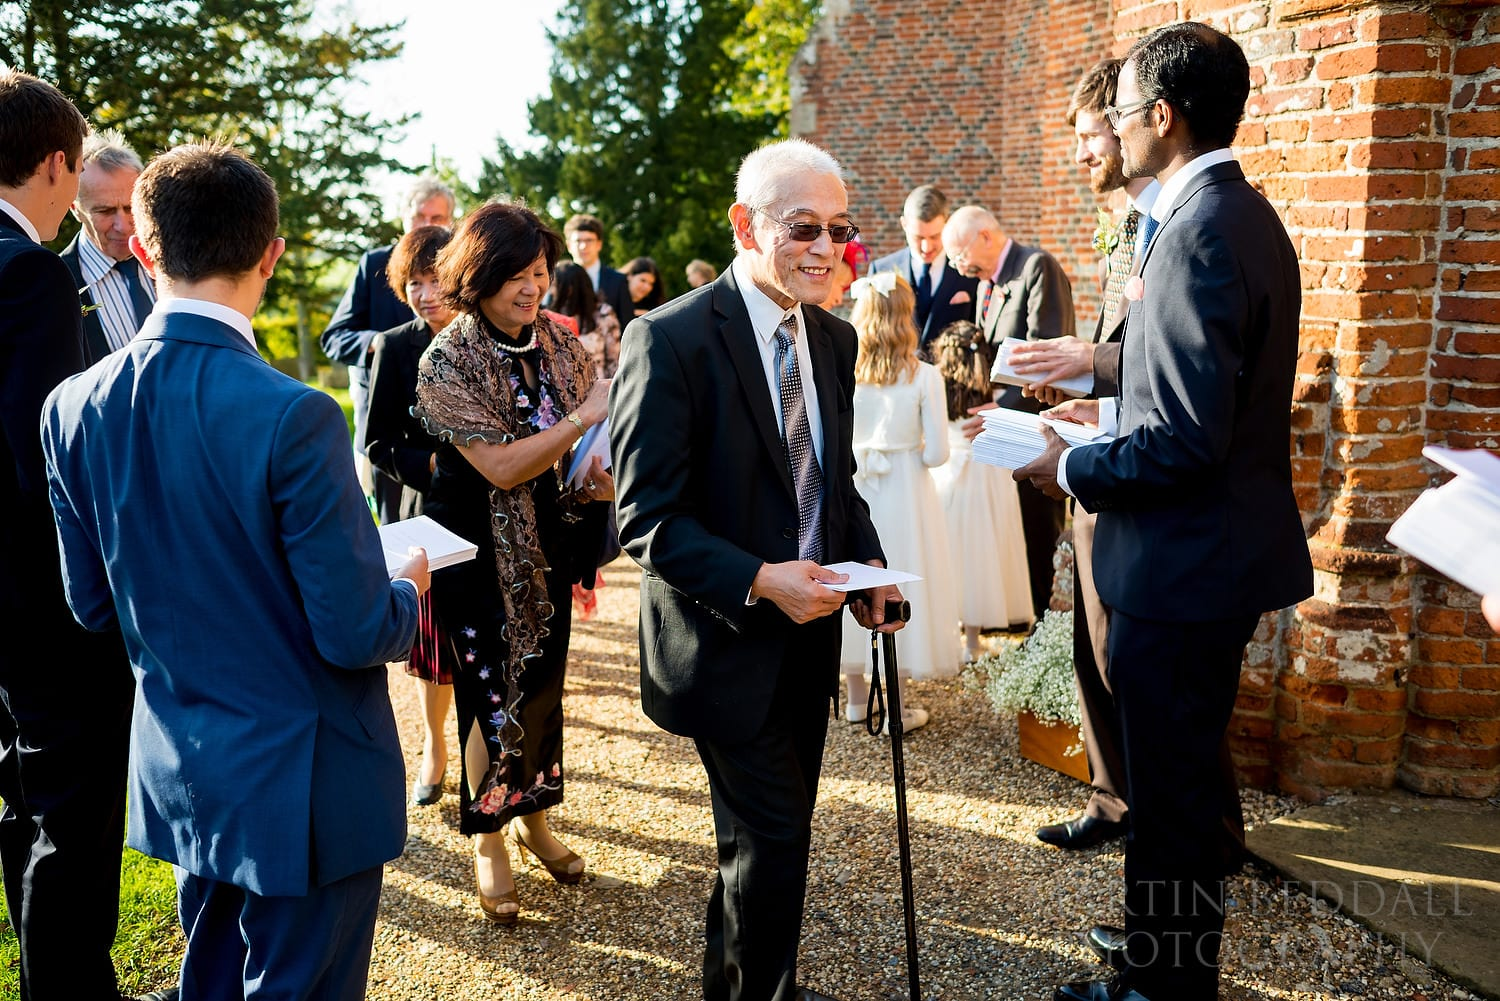 Guests arrive at Layer Marney Tower church